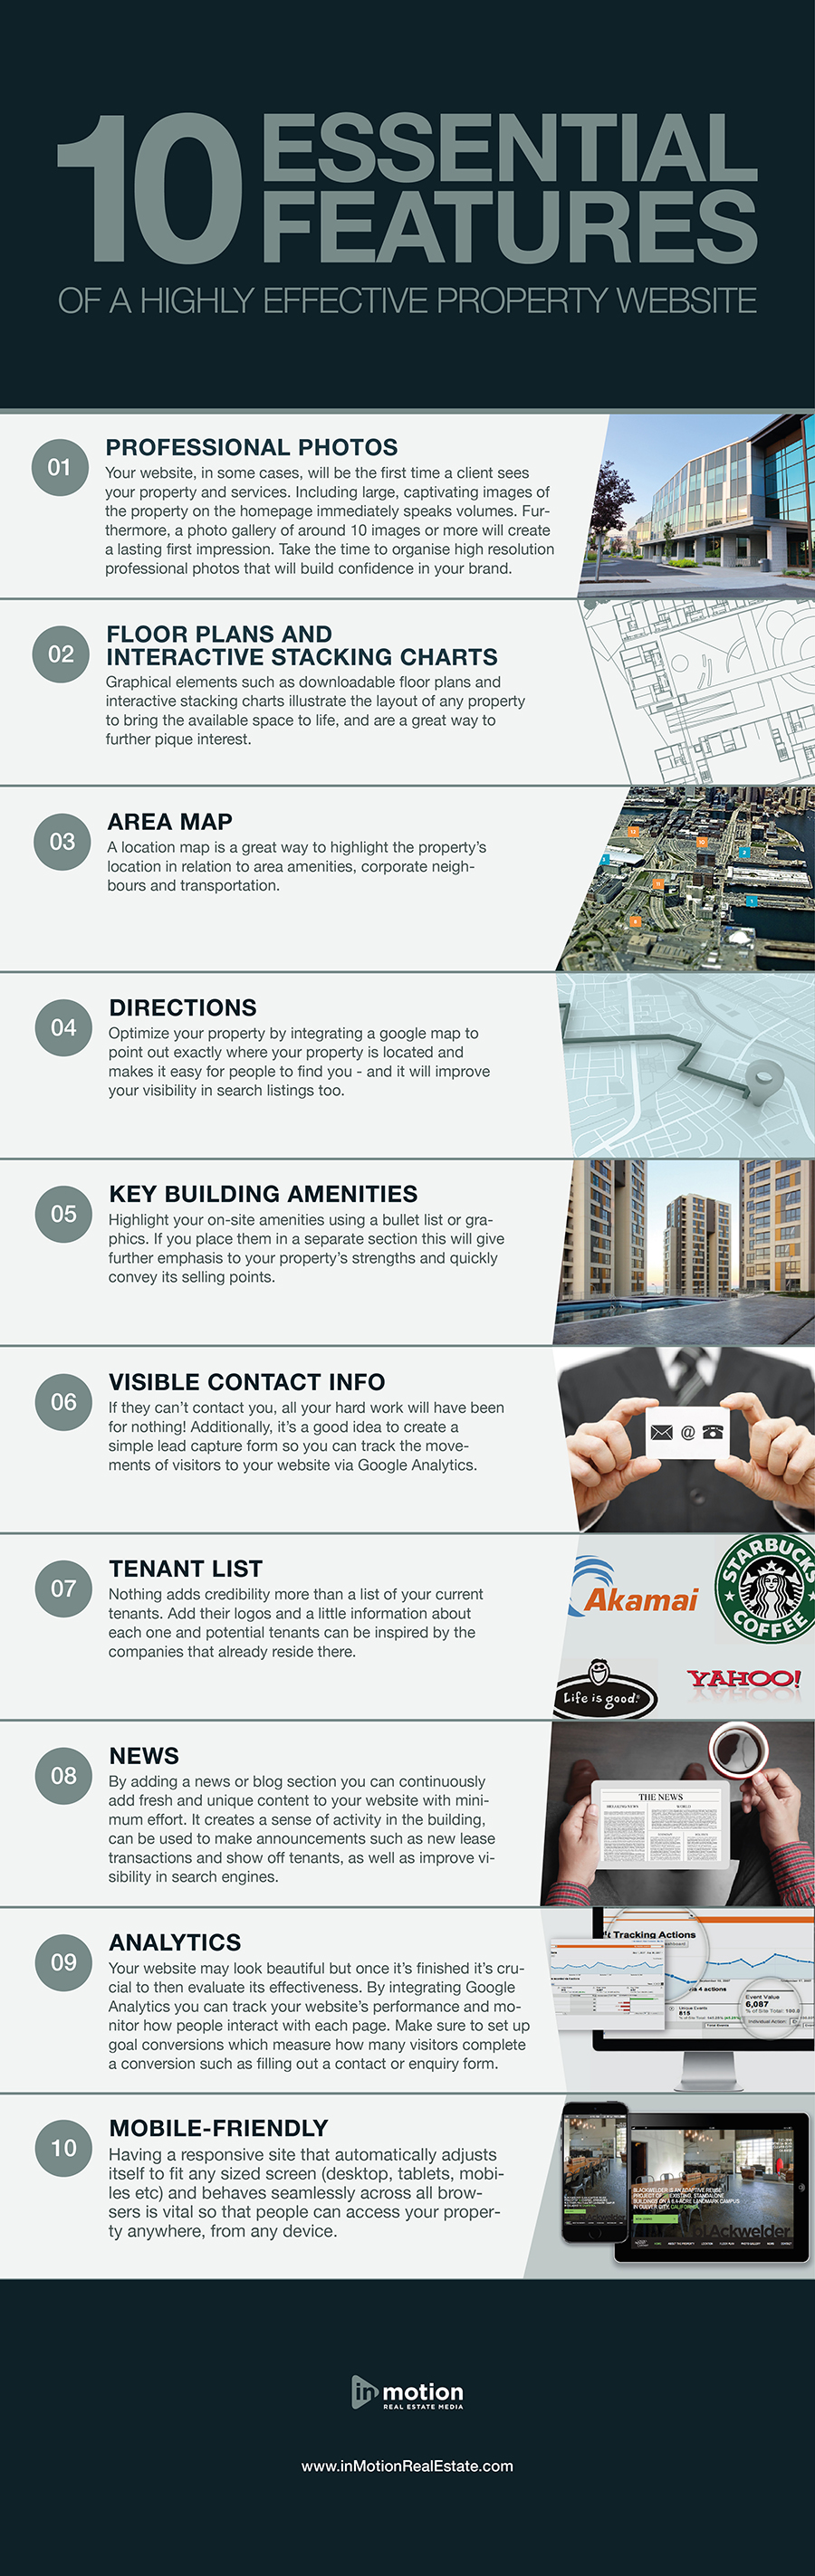 Effective Property Website Infographic